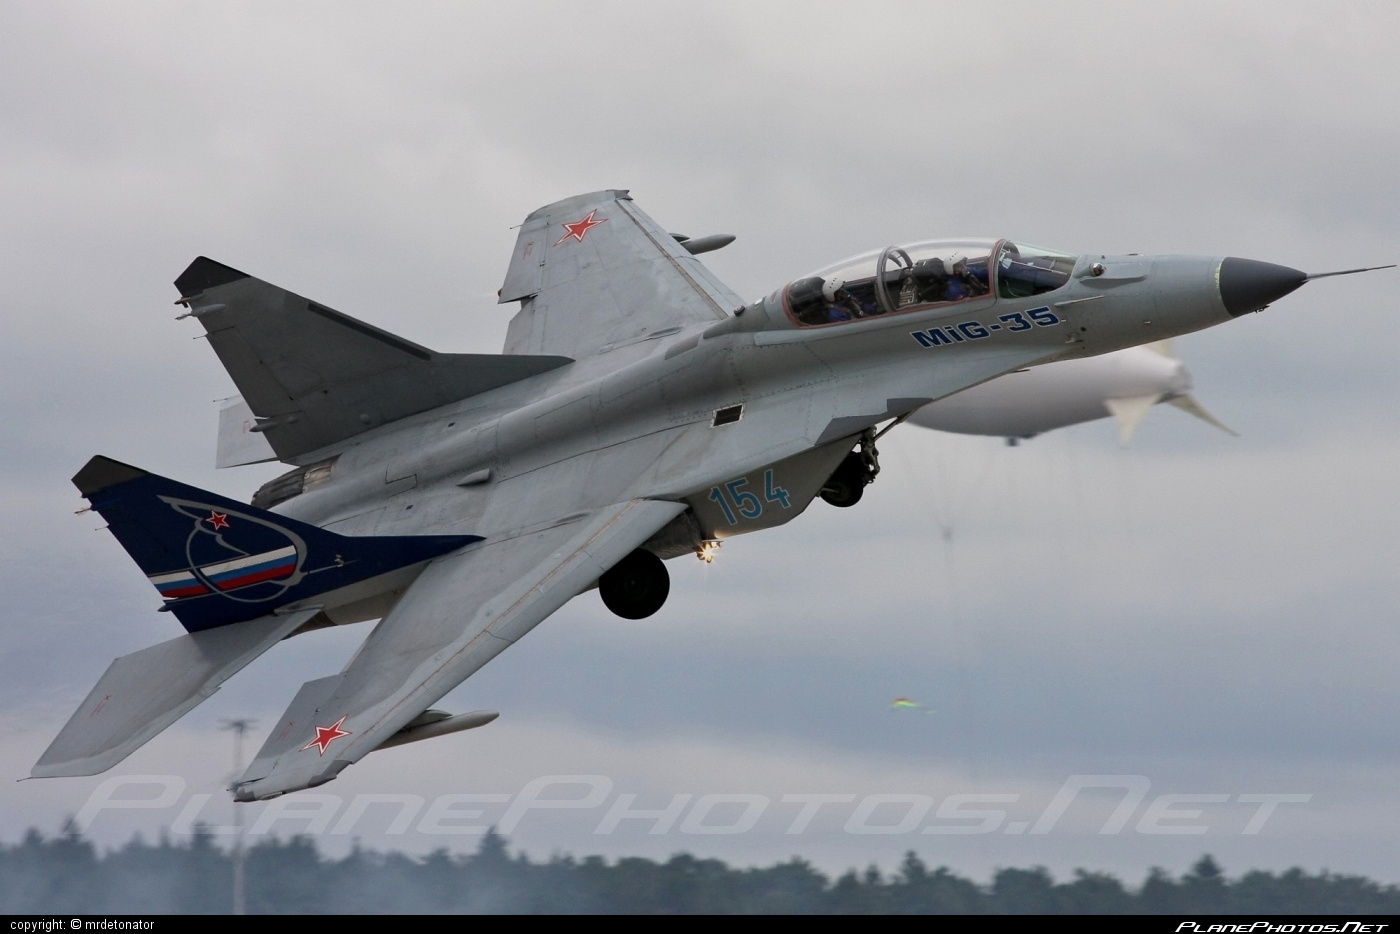 Mikoyan-Gurevich MiG-35 - 154 operated by Voyenno-vozdushnye sily Rossii (Russian Air Force) #maks2009 #mig #mikoyangurevich